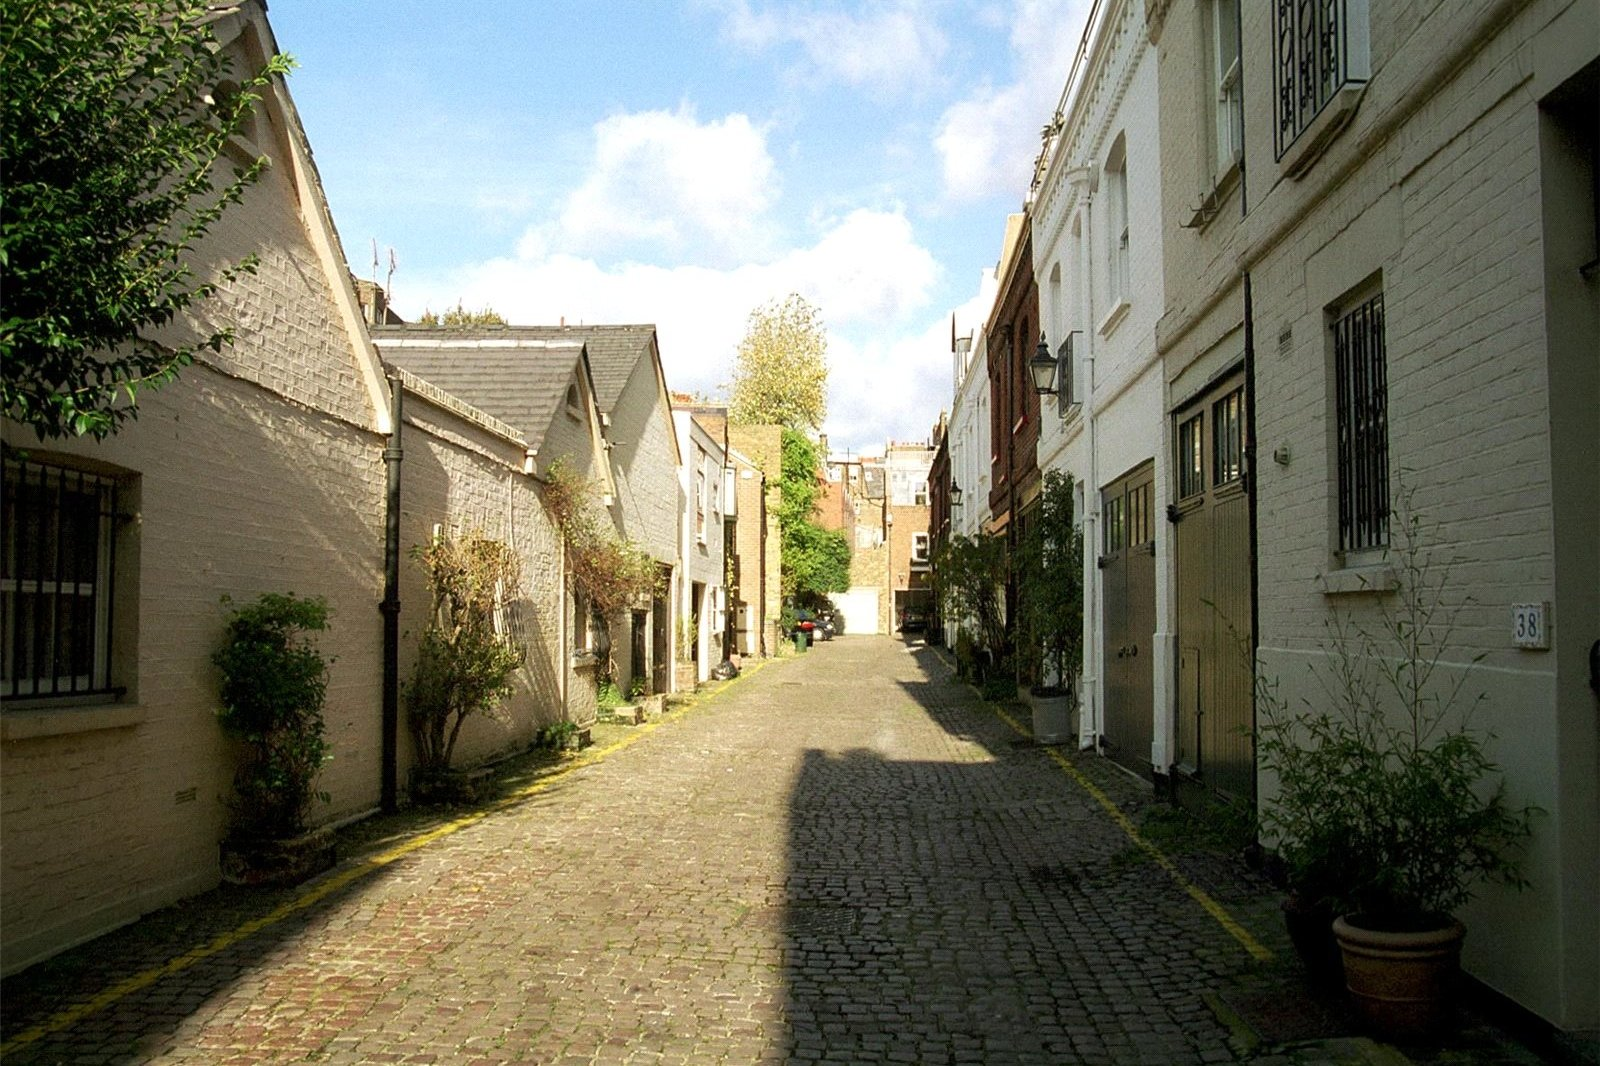 Adam & Eve Mews, Kensington High Street, Abingdon Village, W8-4